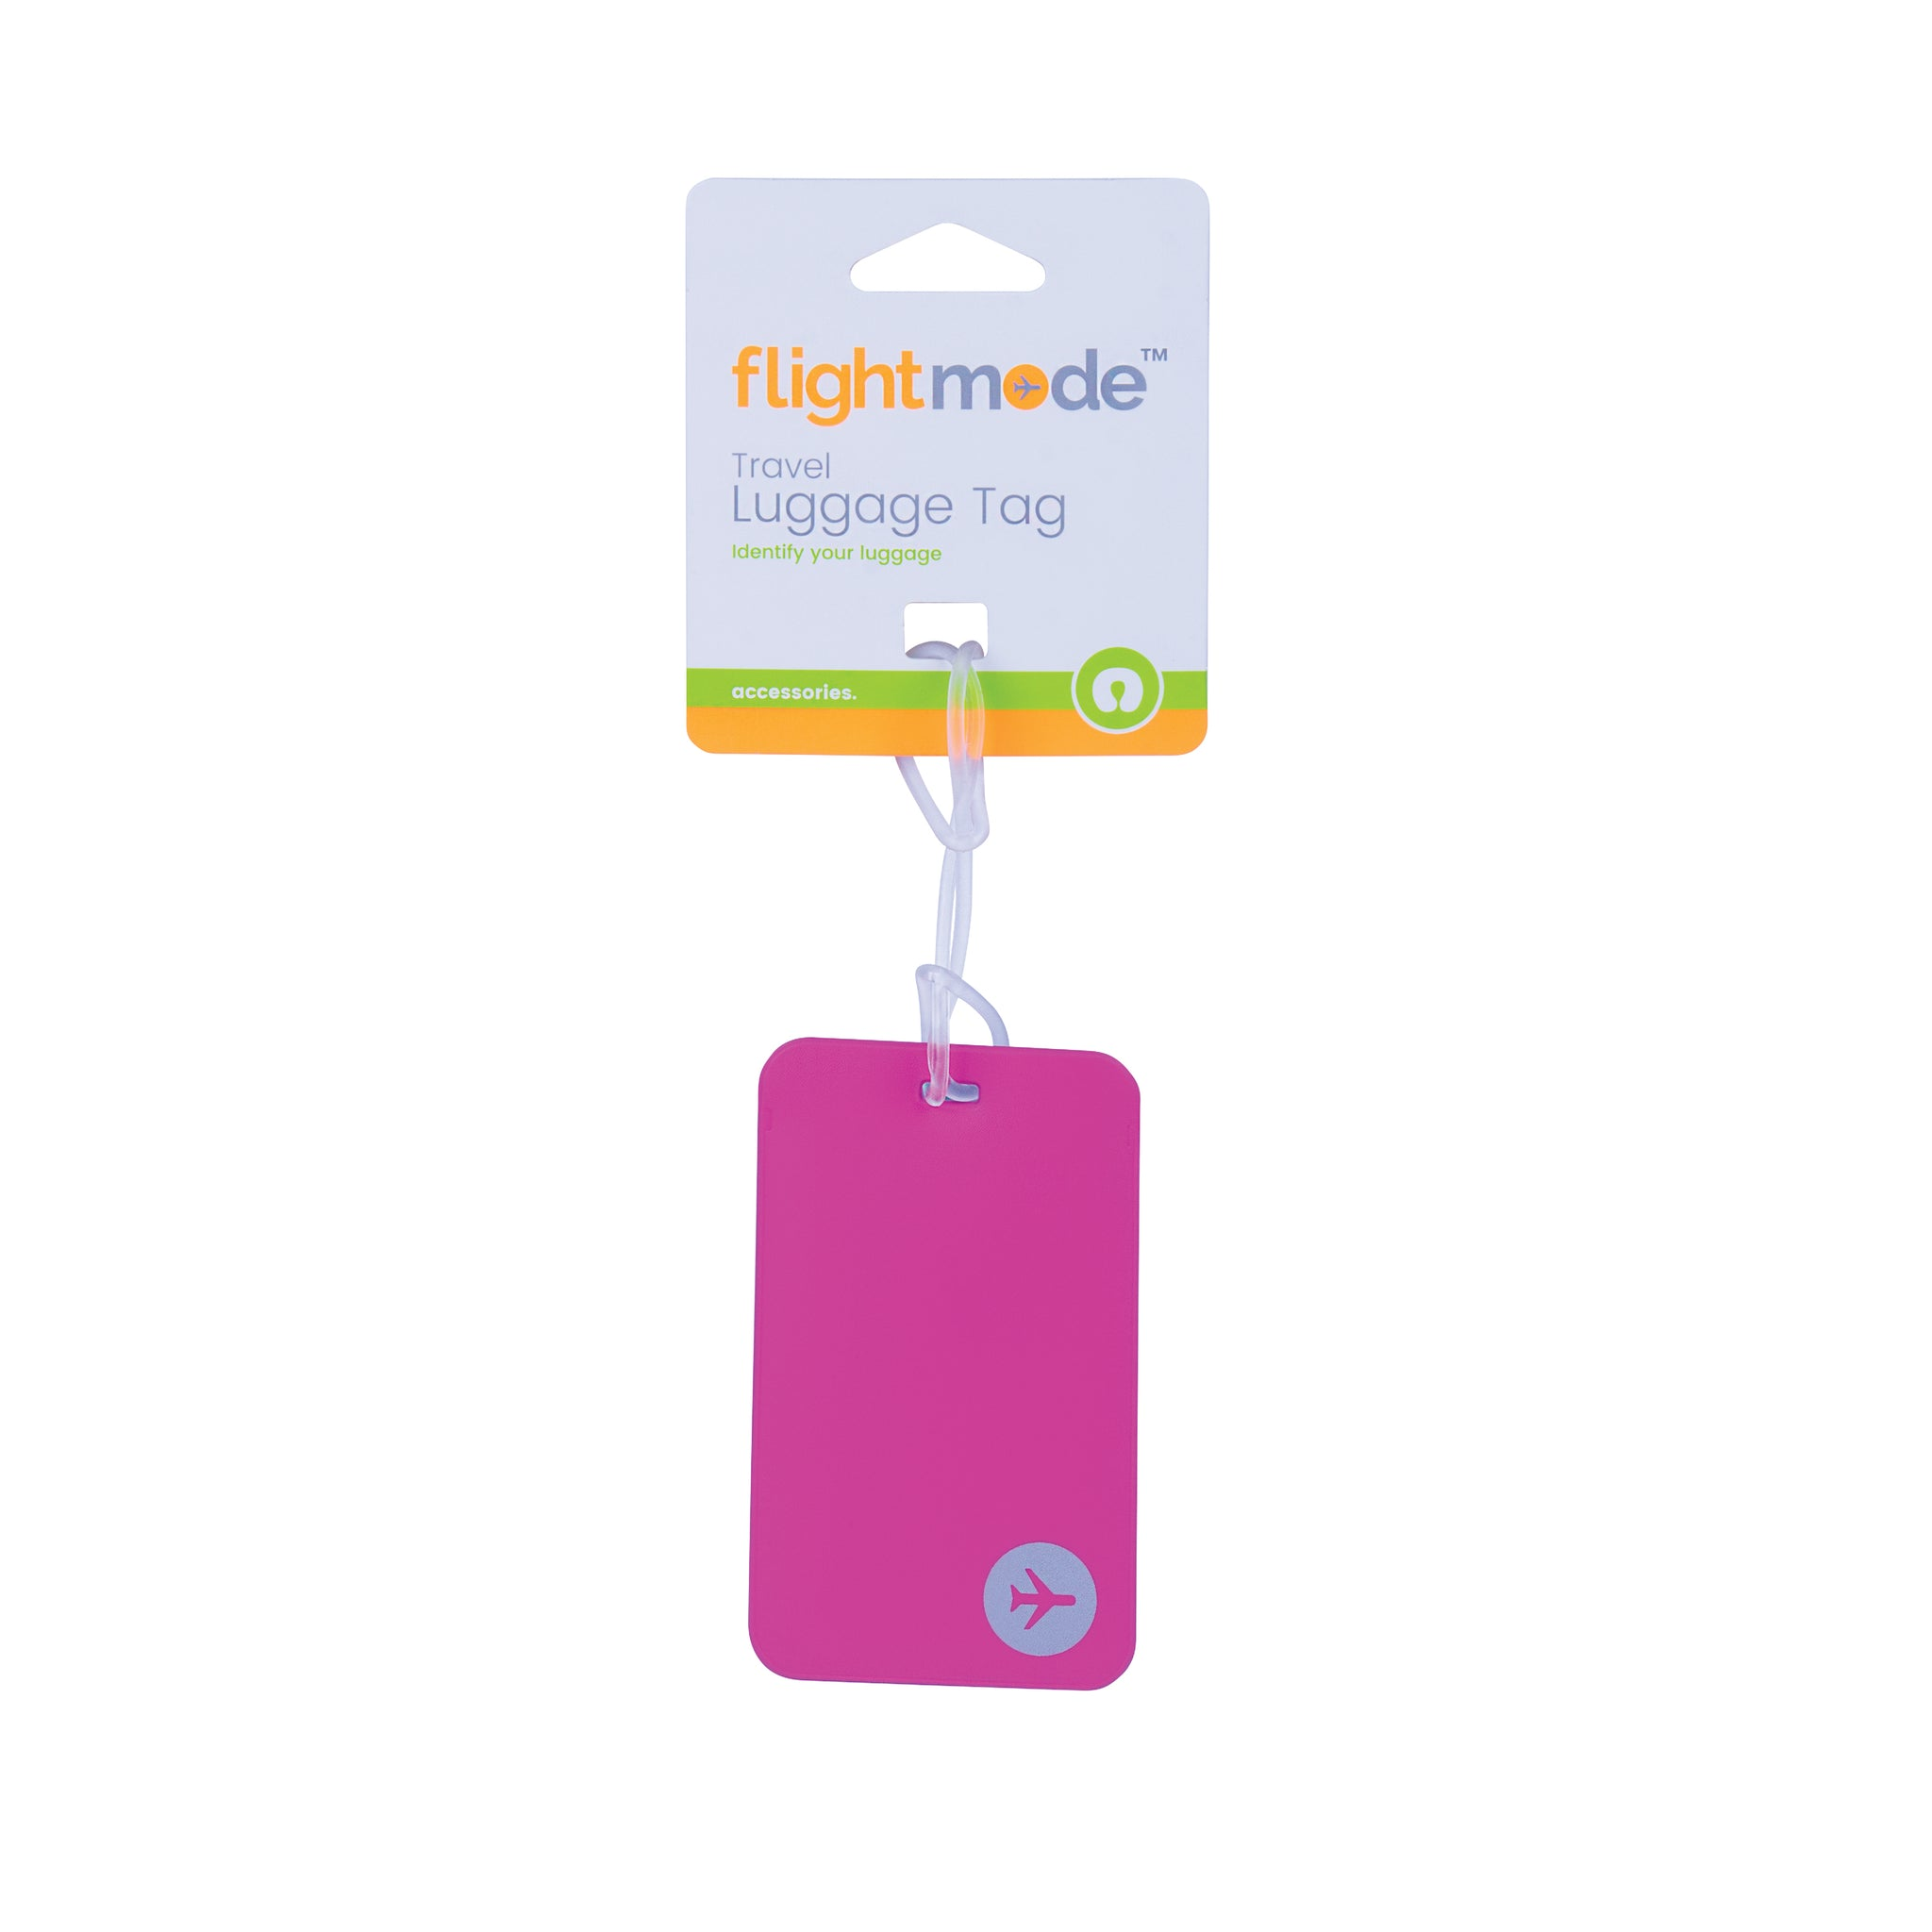 Flightmode PVC Luggage Tags - PVC Luggage Tages in Assorted Colours - Size:11.5*7cm Material:PVC - 3 Colours Assorted - Black, Blue, Pink